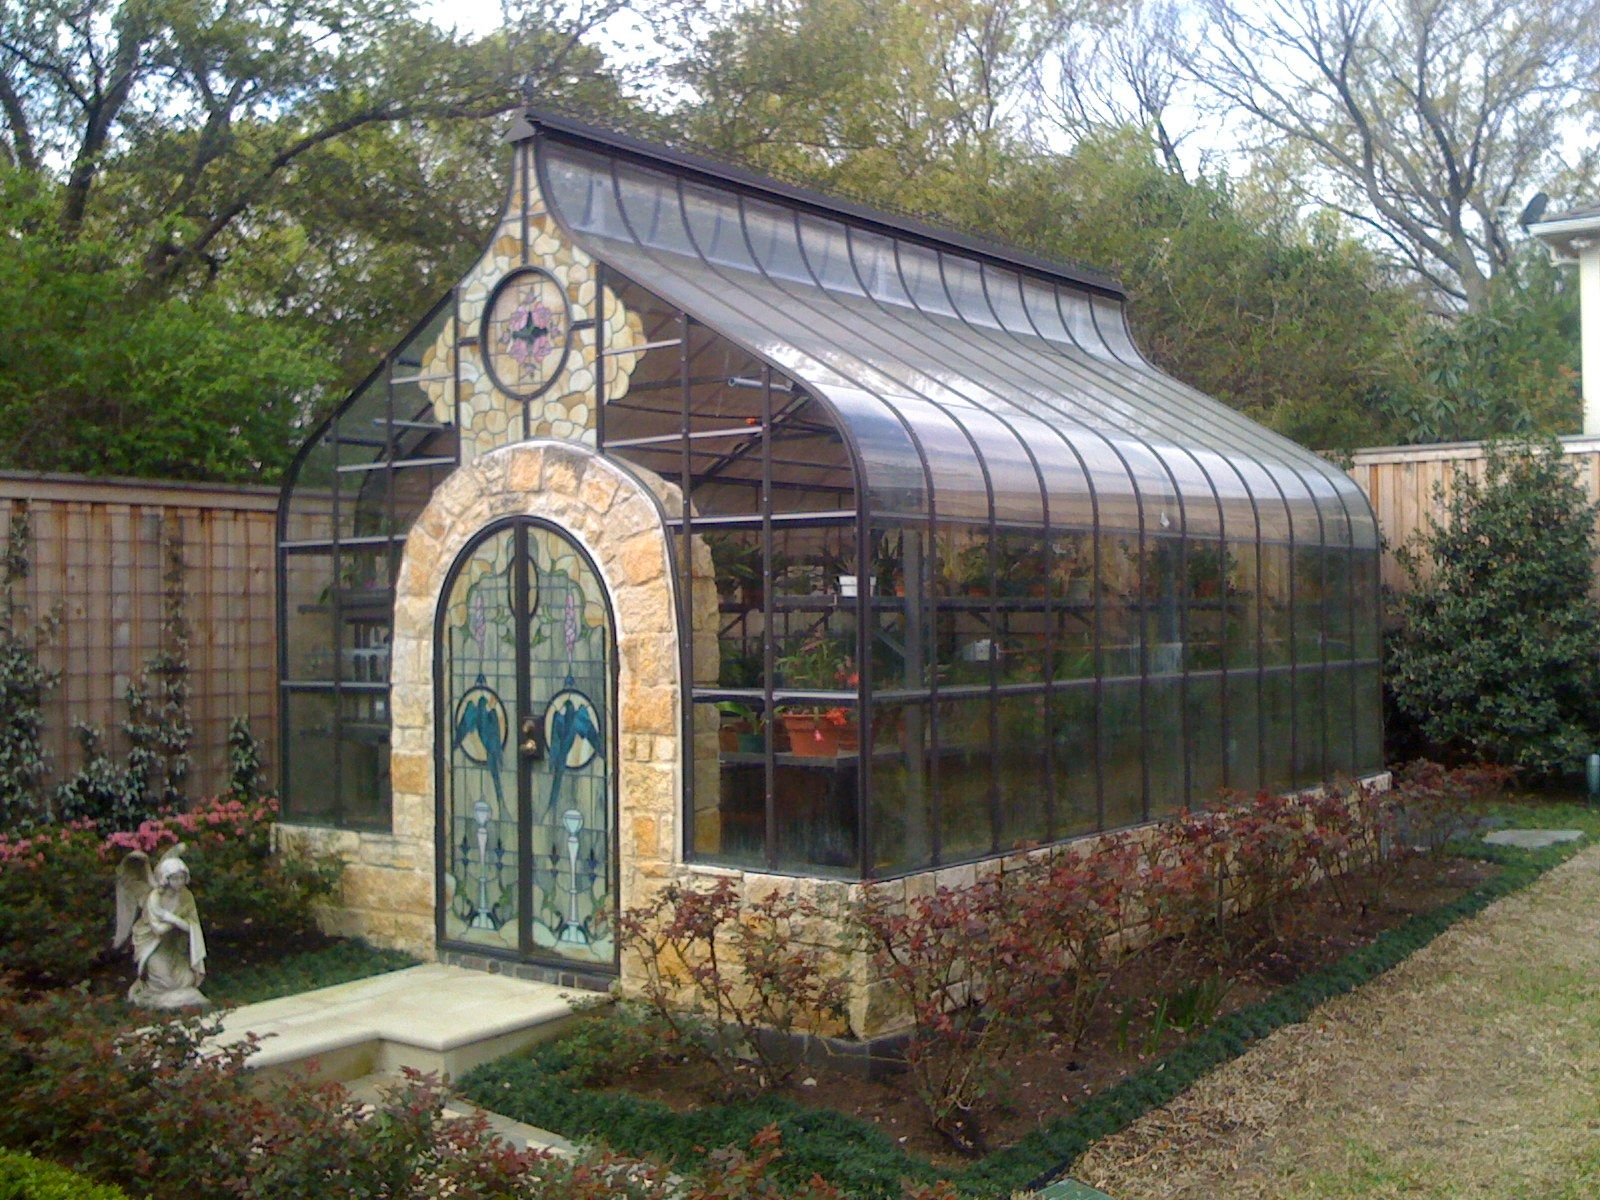 Greenhouse conservatory stained glass doors oh my for House plans with conservatory